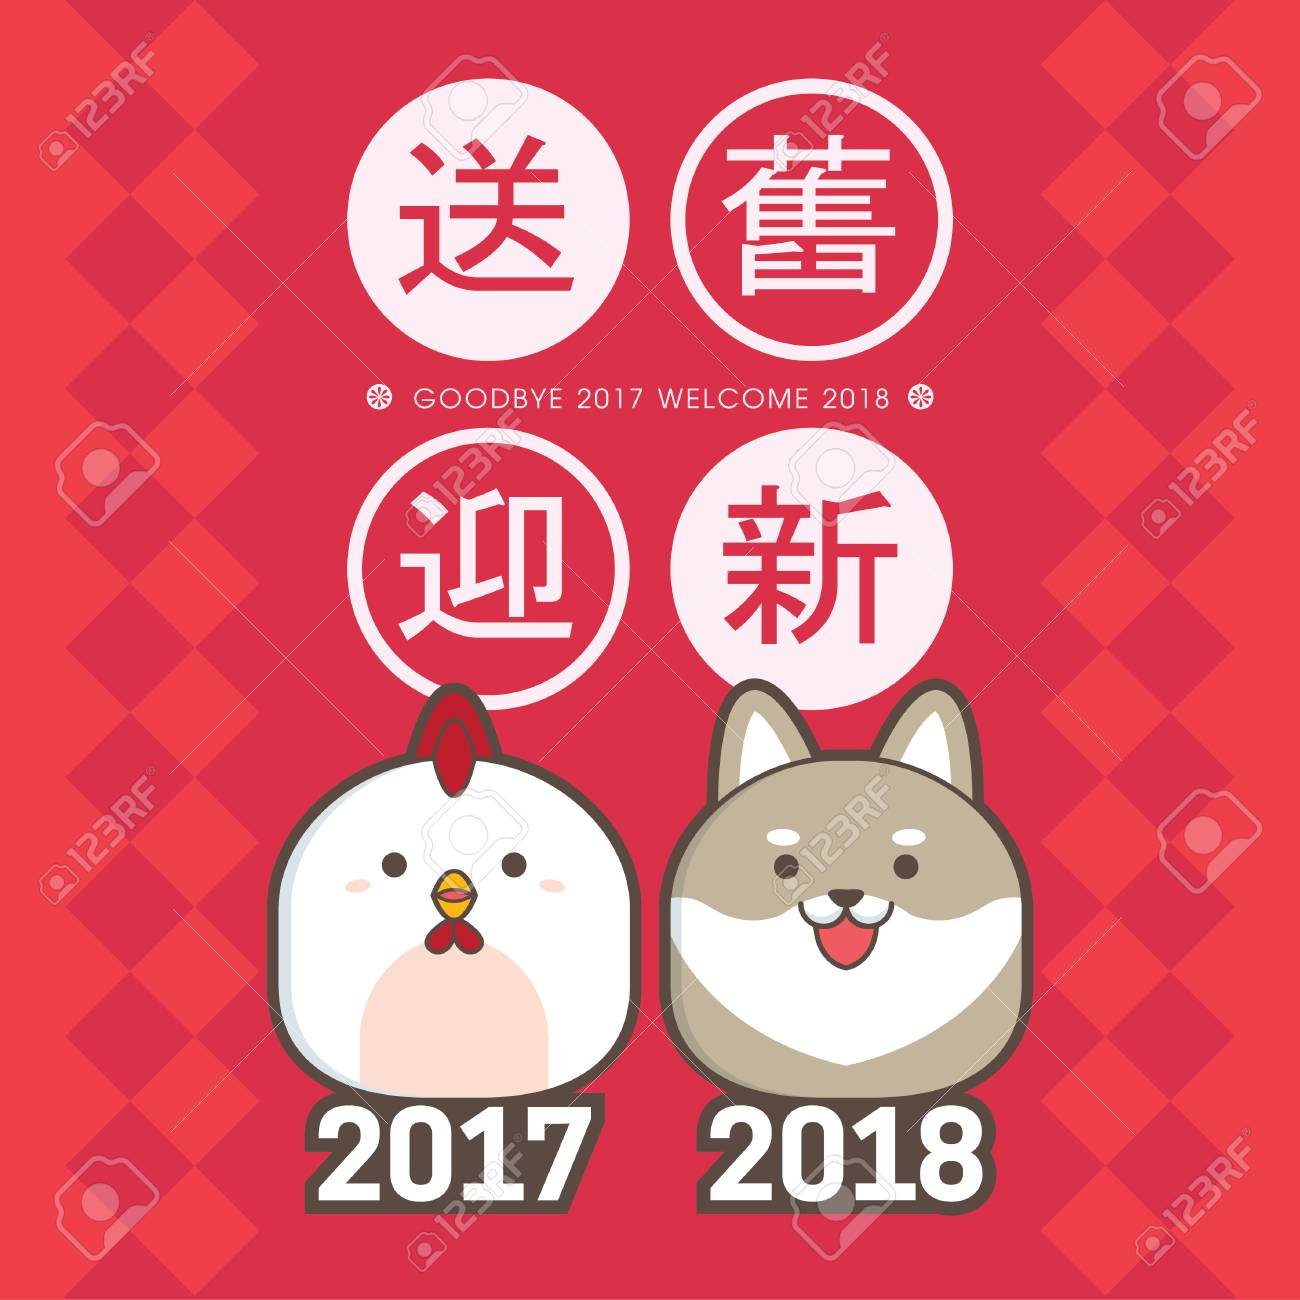 2018 chinese new year greeting card template with cute chicken 2018 chinese new year greeting card template with cute chicken puppy translation kristyandbryce Images